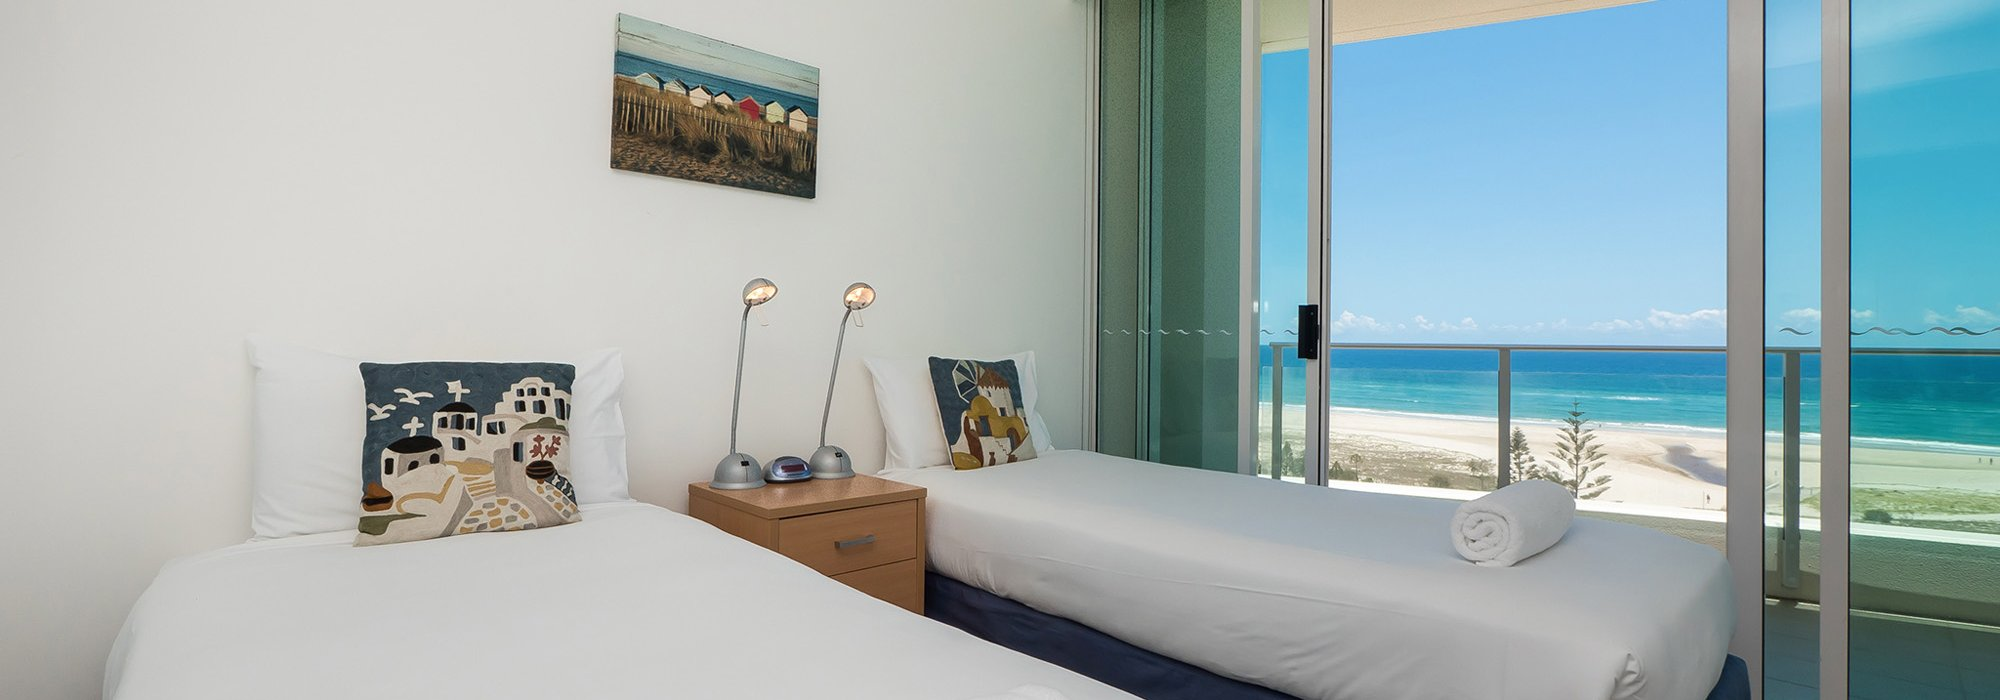 Accommodation Kirra Surf Apartments